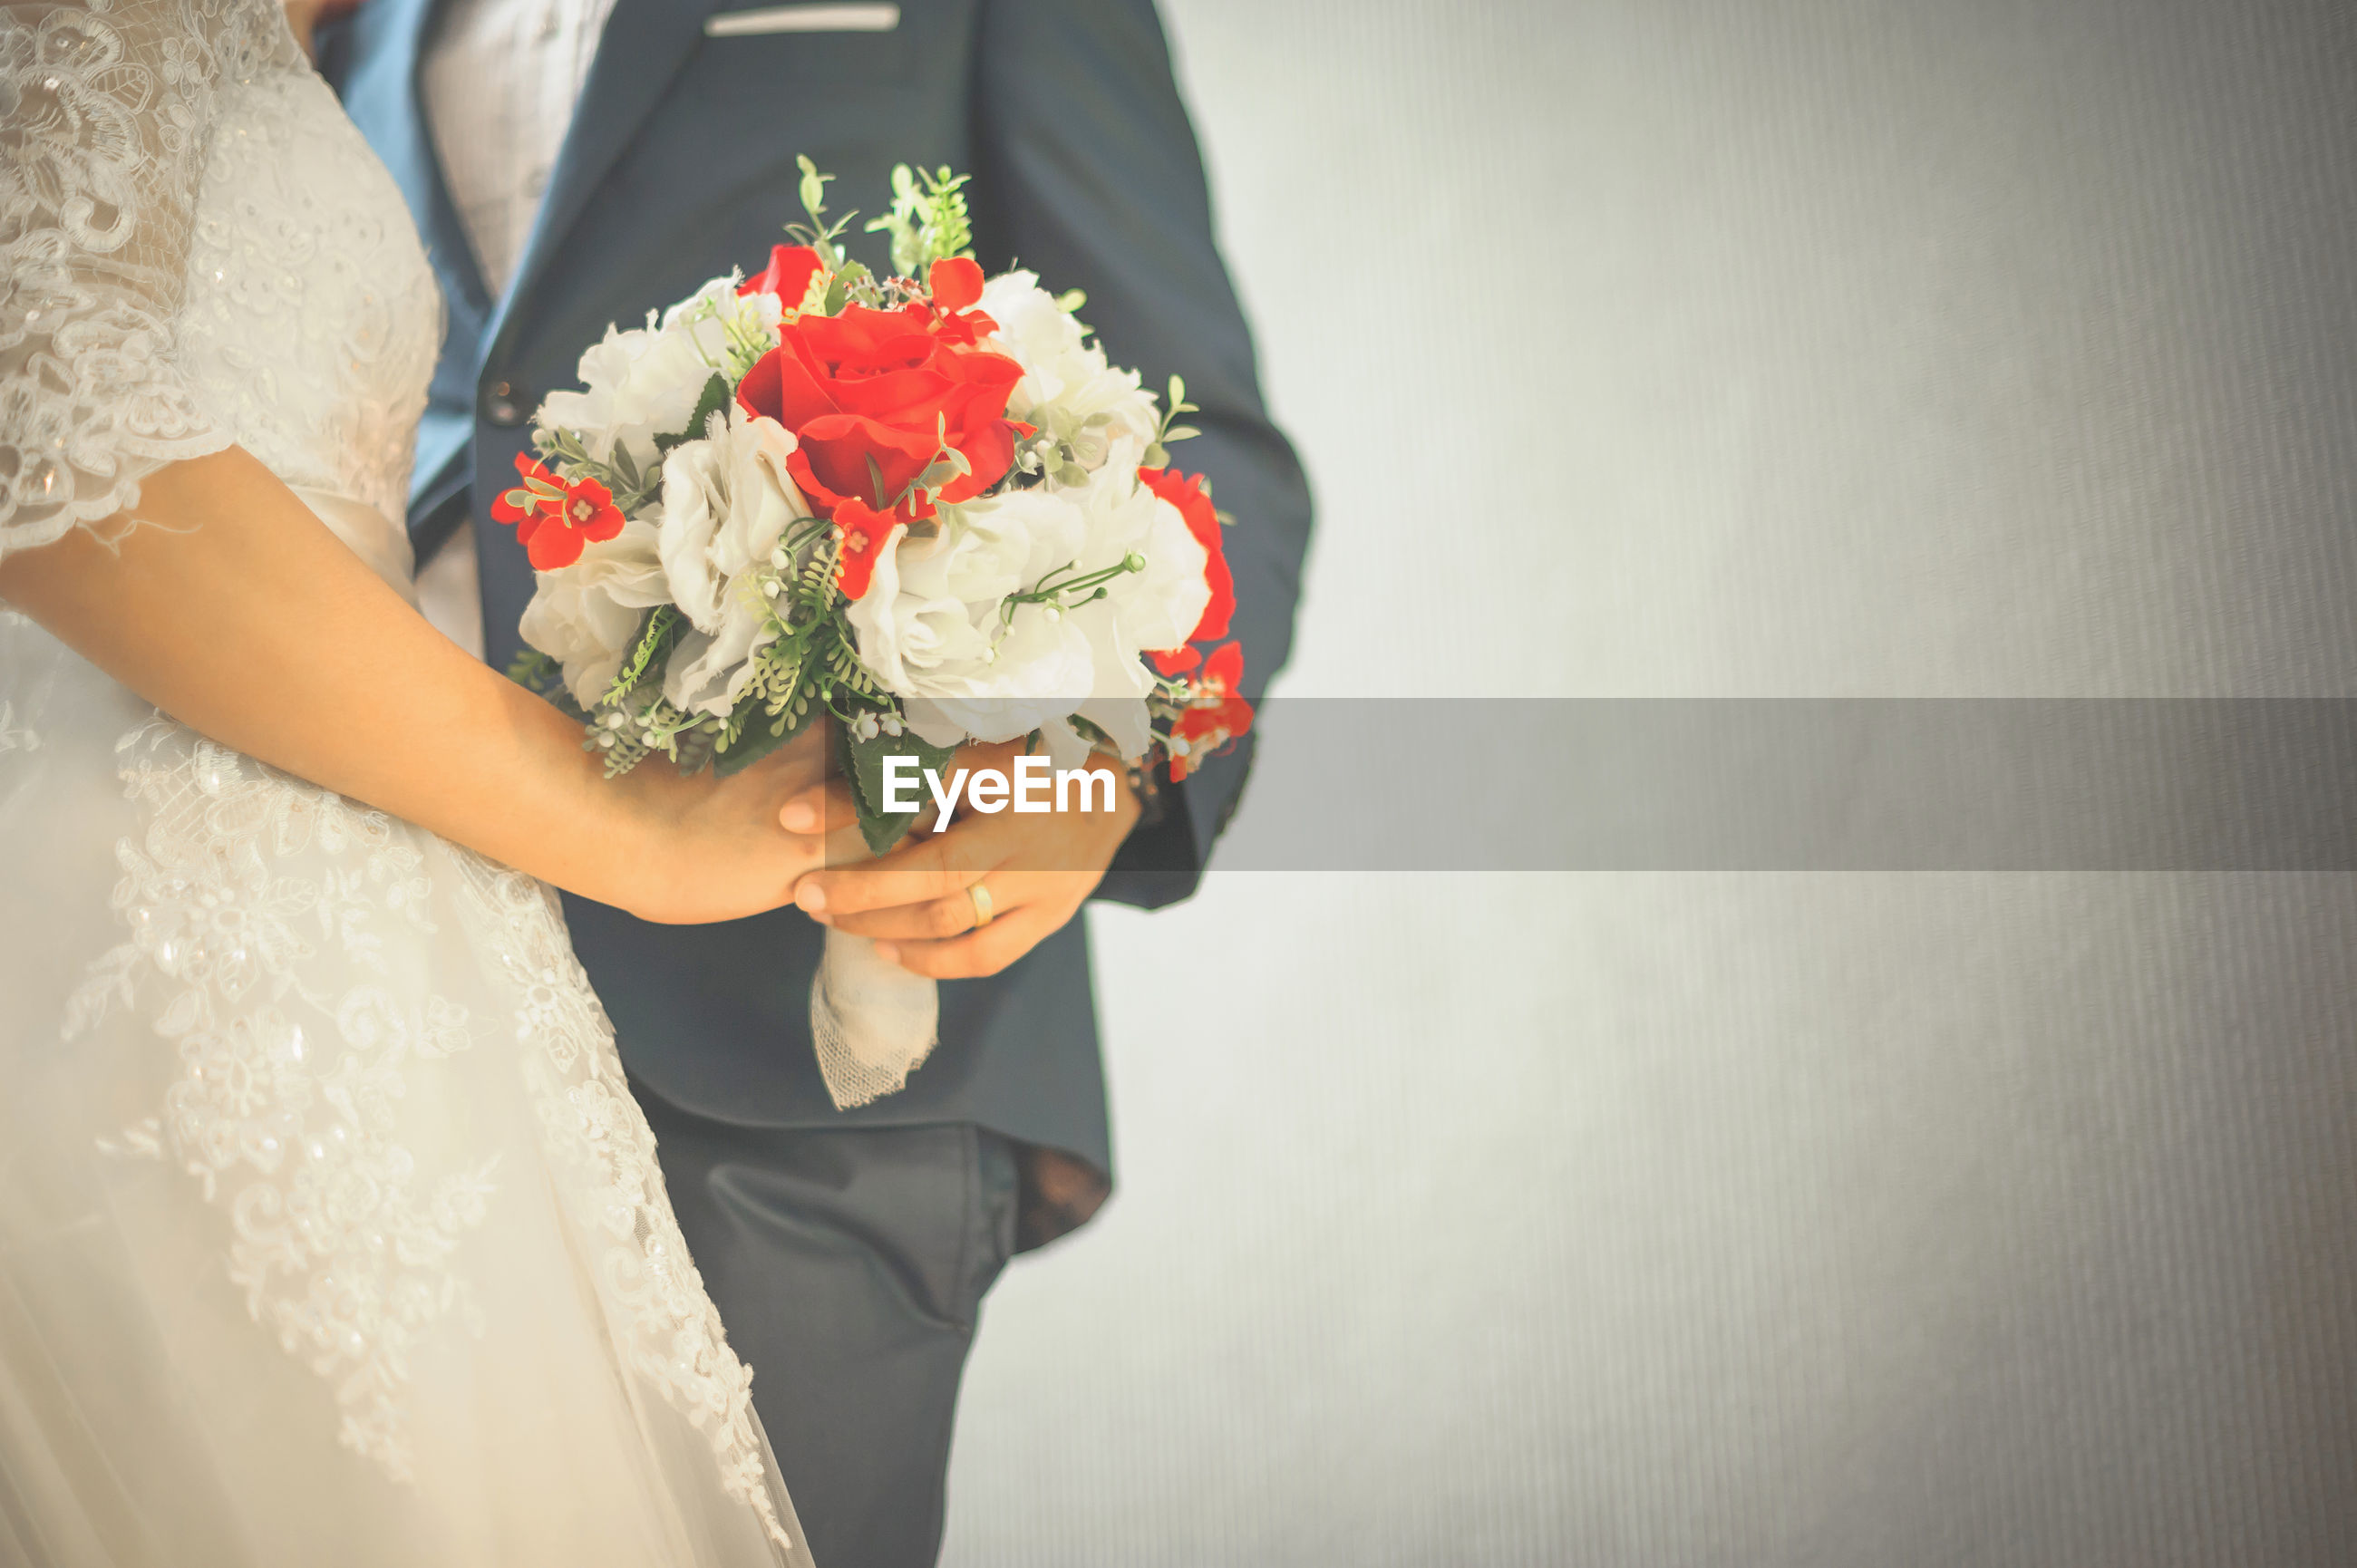 Midsection of bride and bridegroom holding bouquet against wall